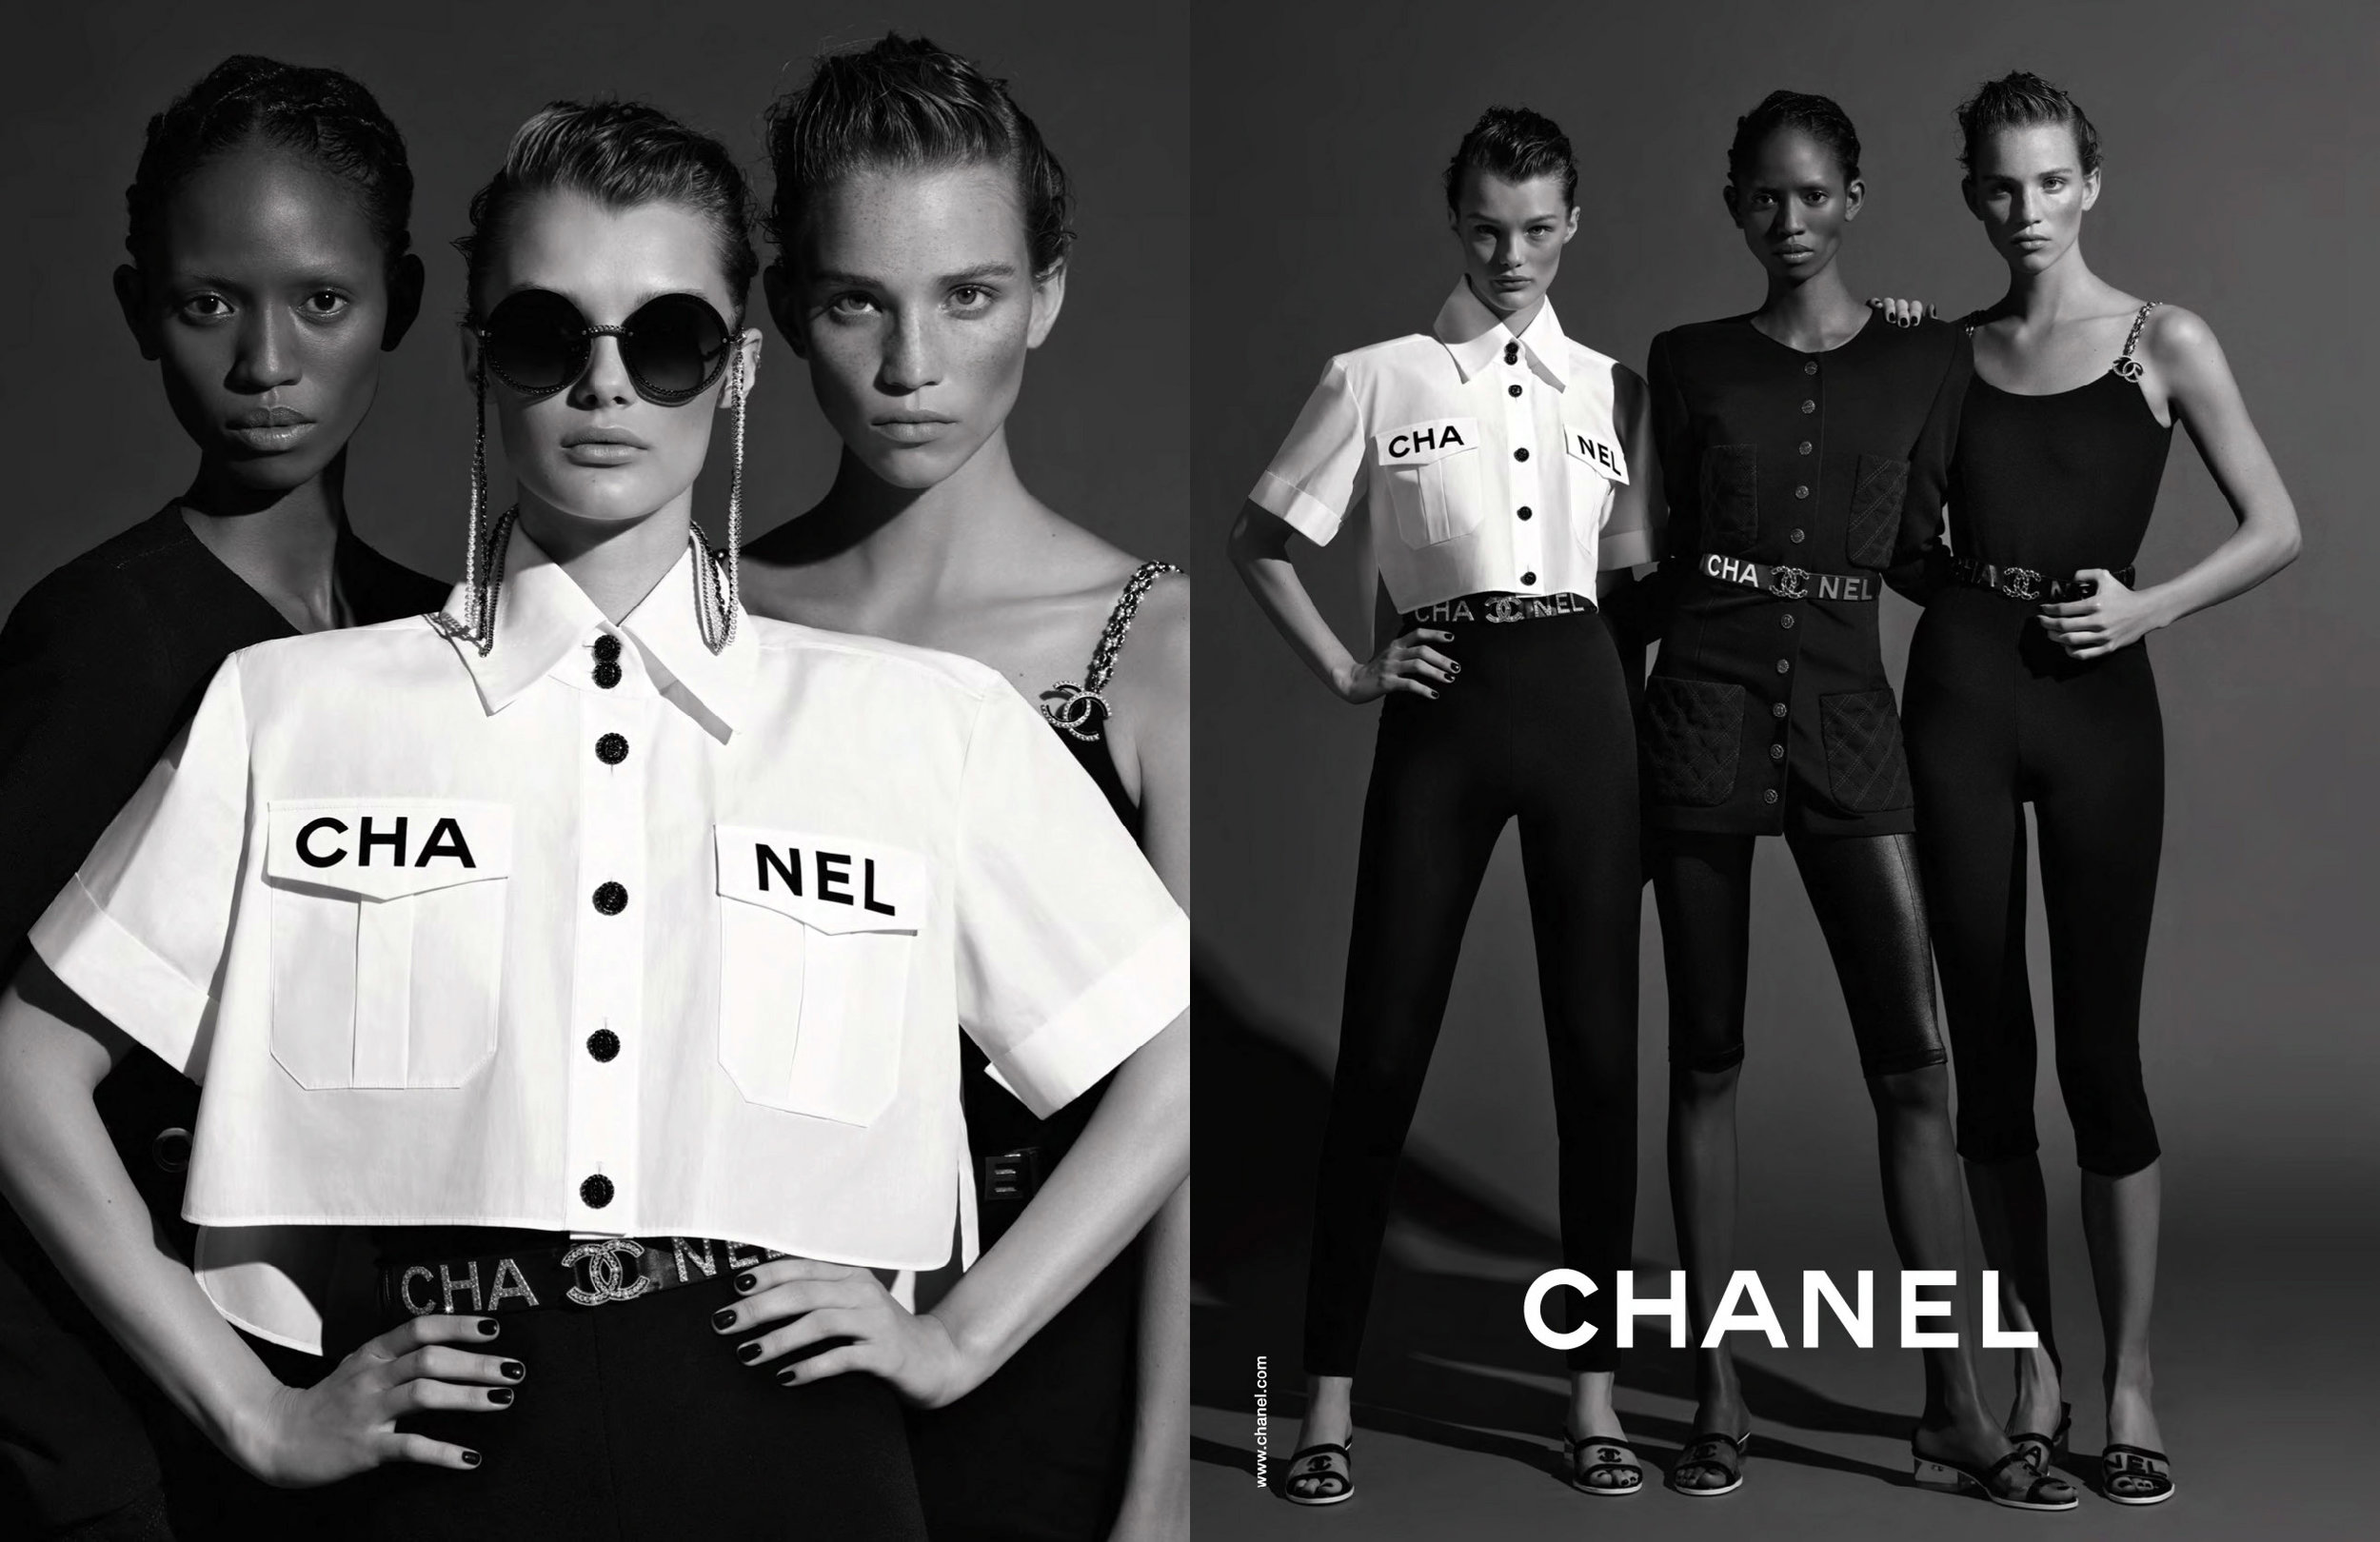 chanel_spring_2019_campaign5.jpg